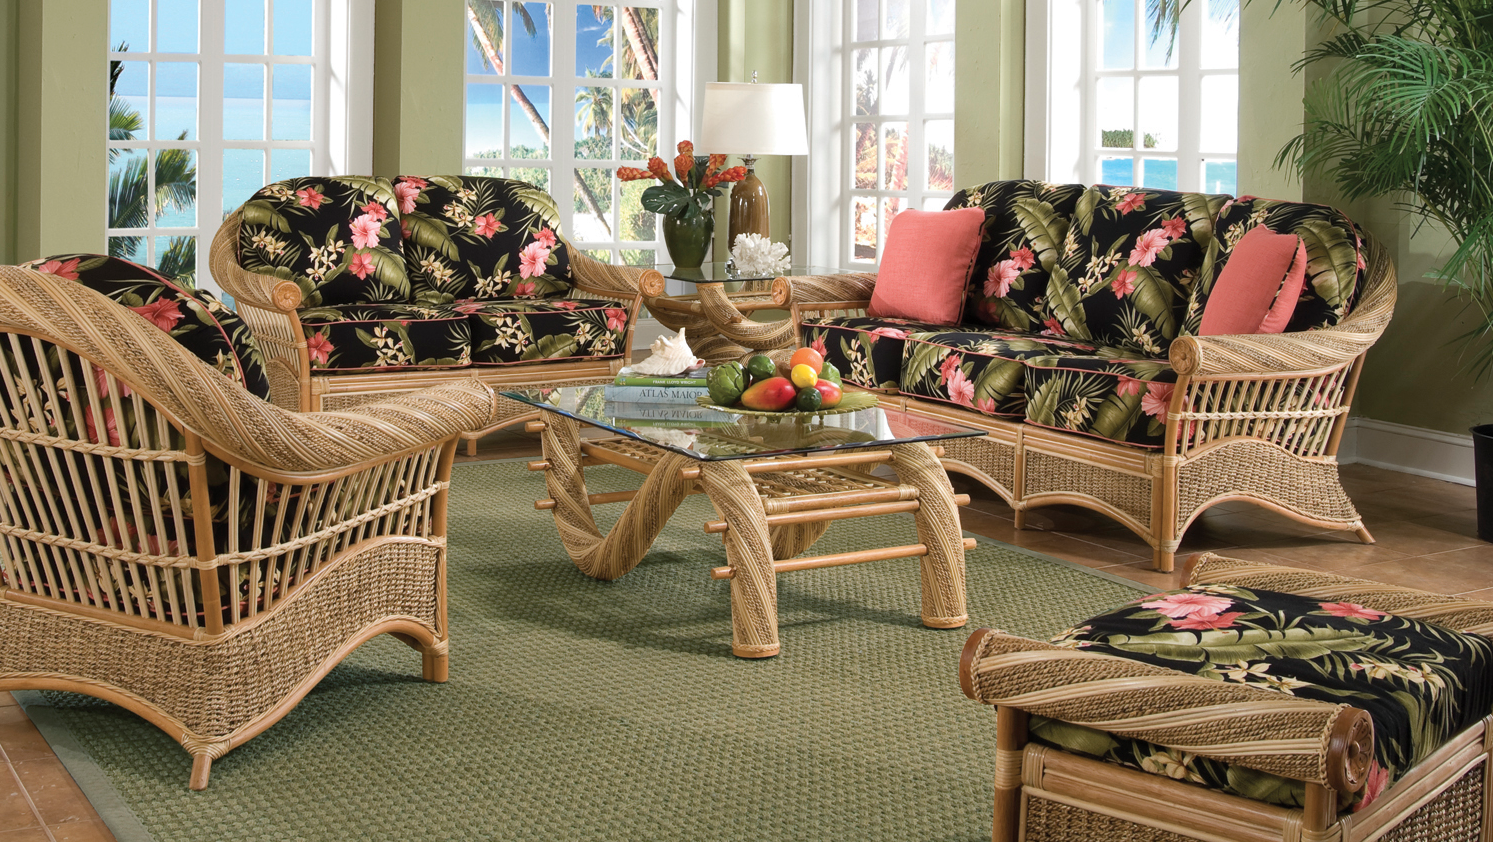 Living Room Furniture Hawaii tropical rattan furniture - kona | wicker paradise